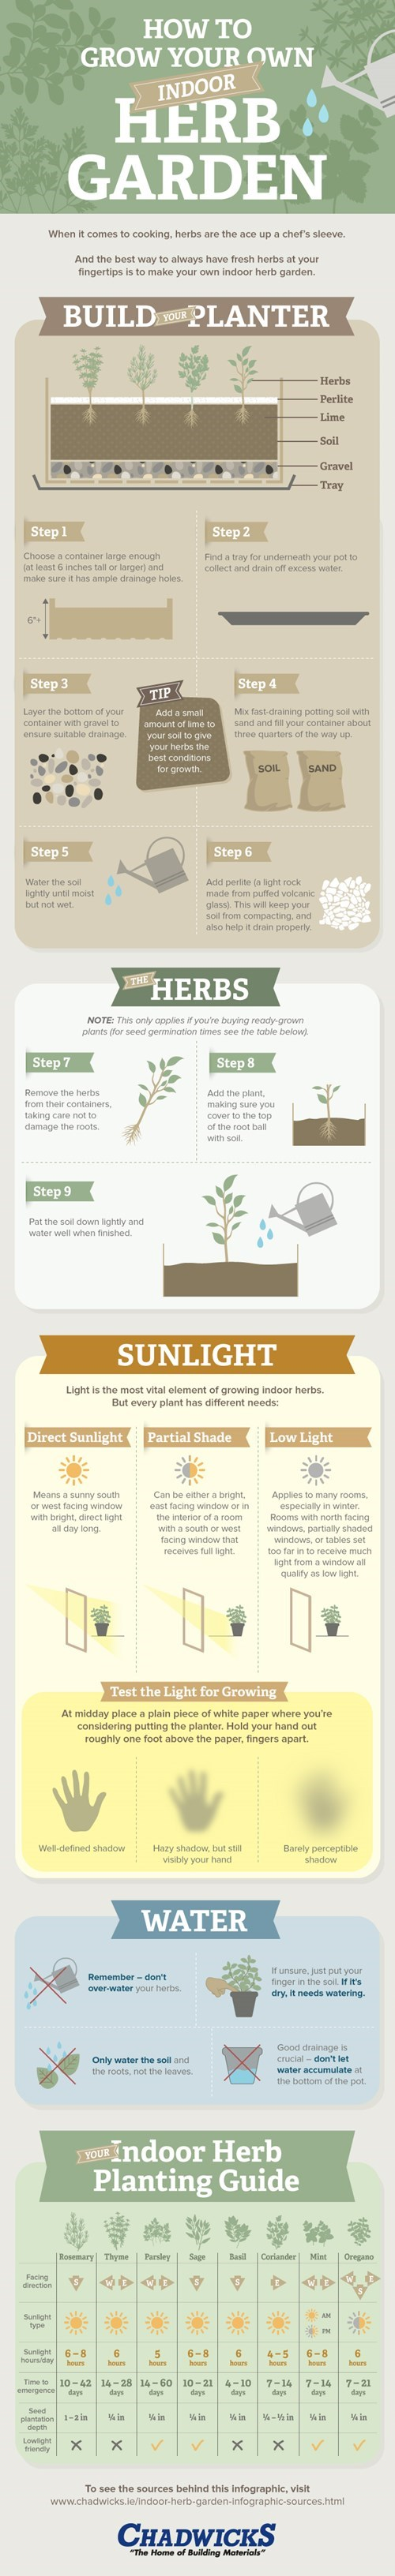 How To Grow Your Own Indoor Herb Garden